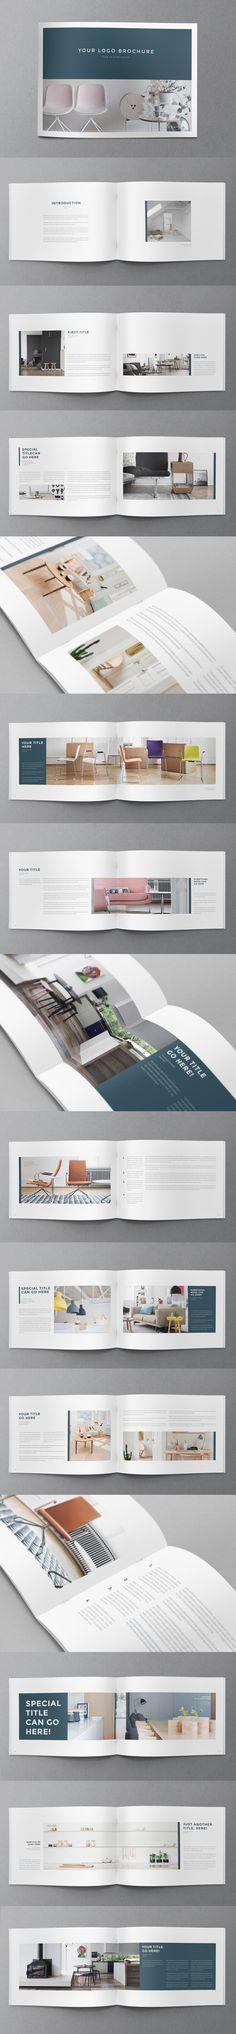 Interior Design Minimal Brochure. Download here: http://graphicriver.net/item/interior-design-minimal-brochure/11243000?ref=abradesign #brochure #design